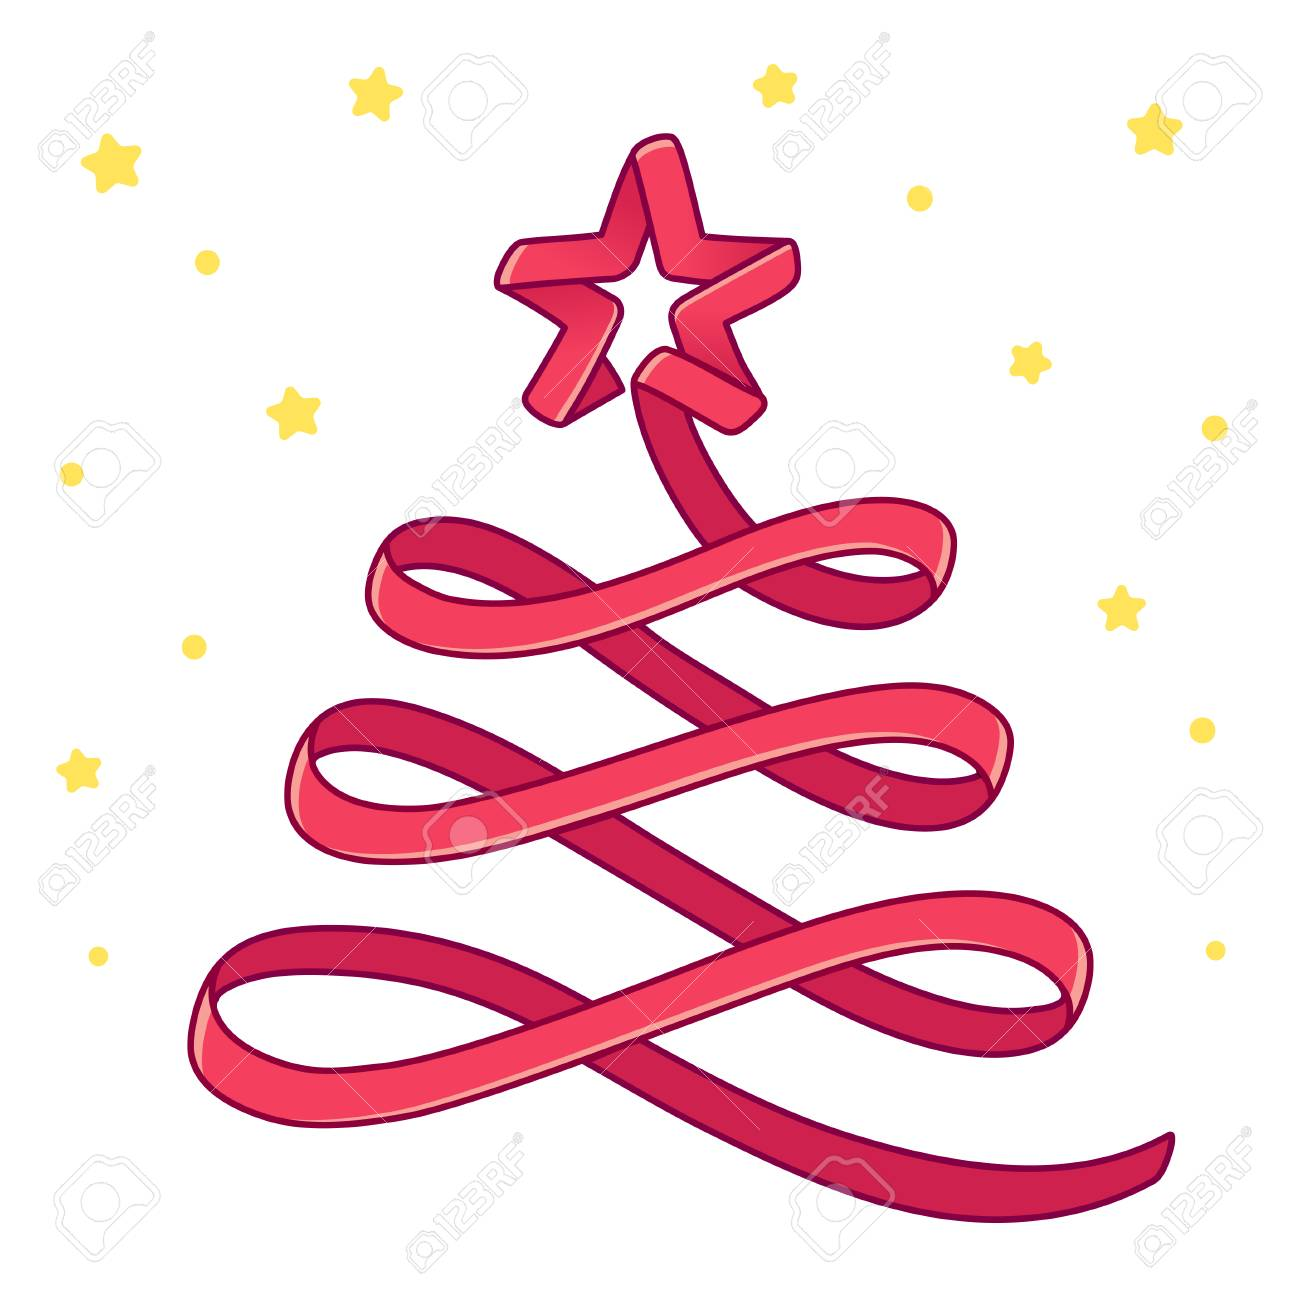 Merry Christmas Greeting Card Cartoon Red Ribbon Christmas Tree Royalty Free Cliparts Vectors And Stock Illustration Image 126947067 Even if it is not real, but artificial or even virtual. 123rf com